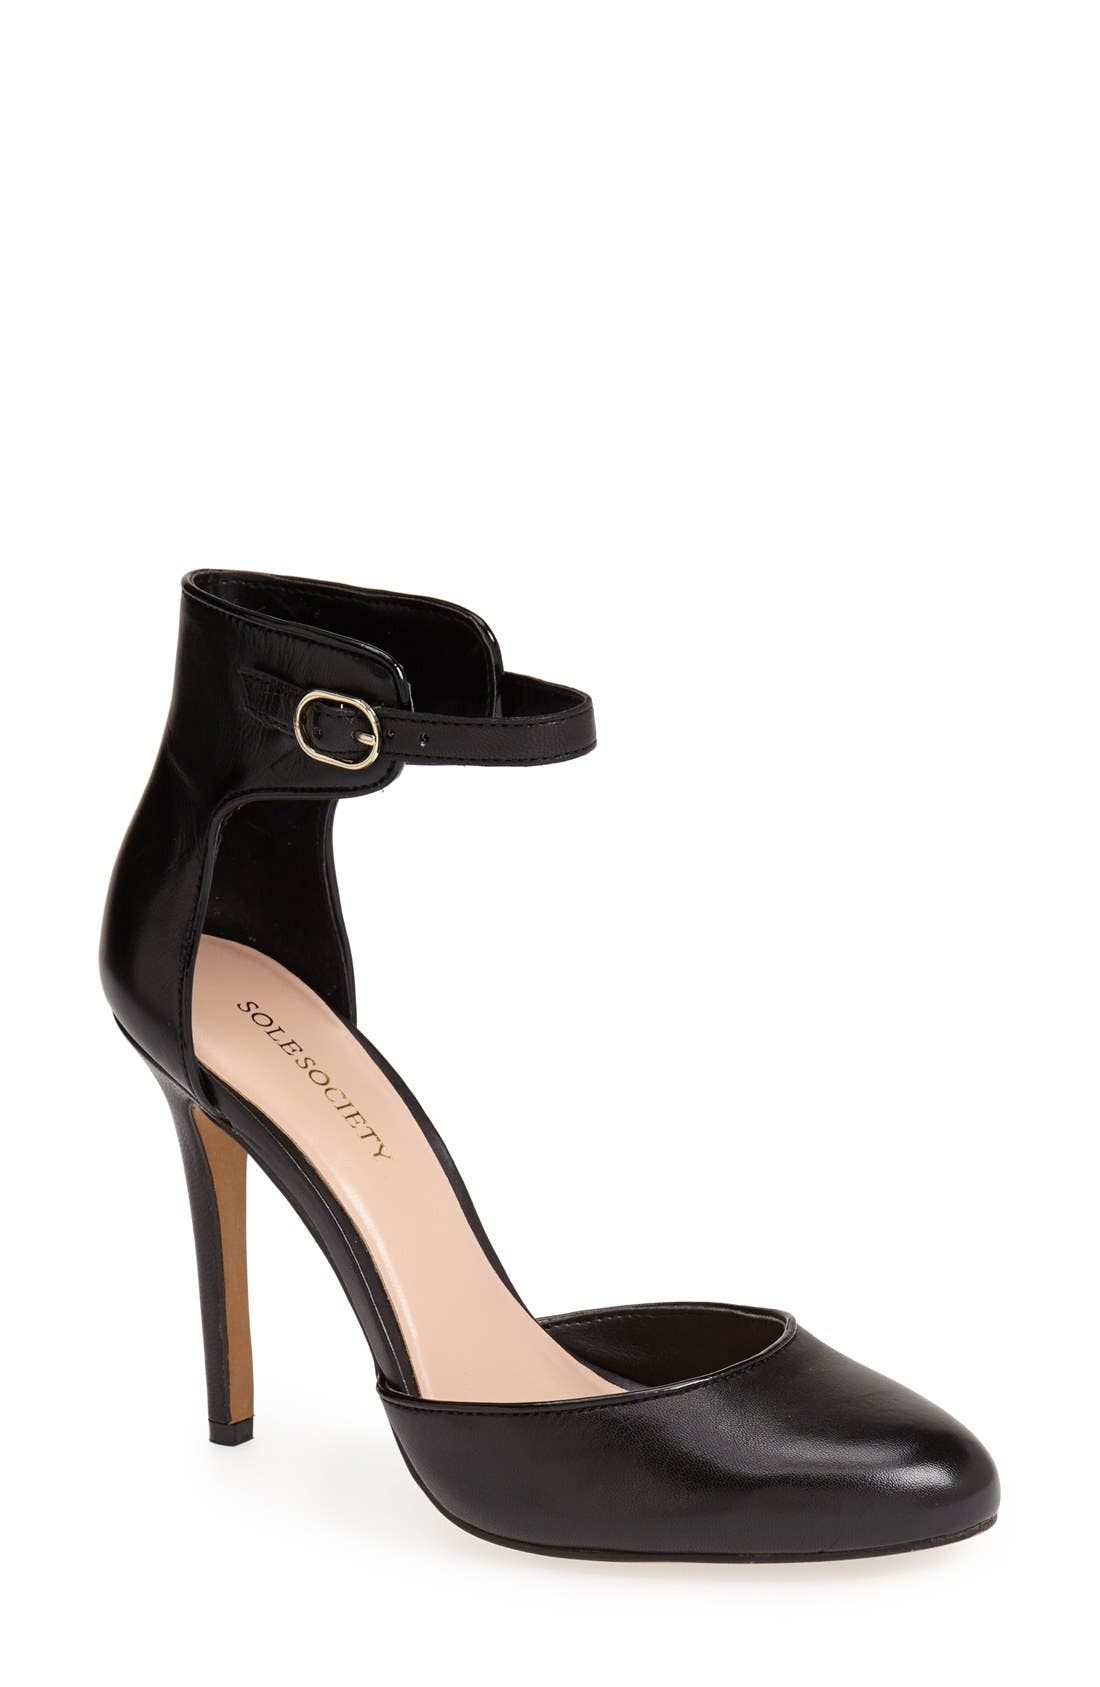 Main Image - SOLE SOCIETY RACHAEL PUMP